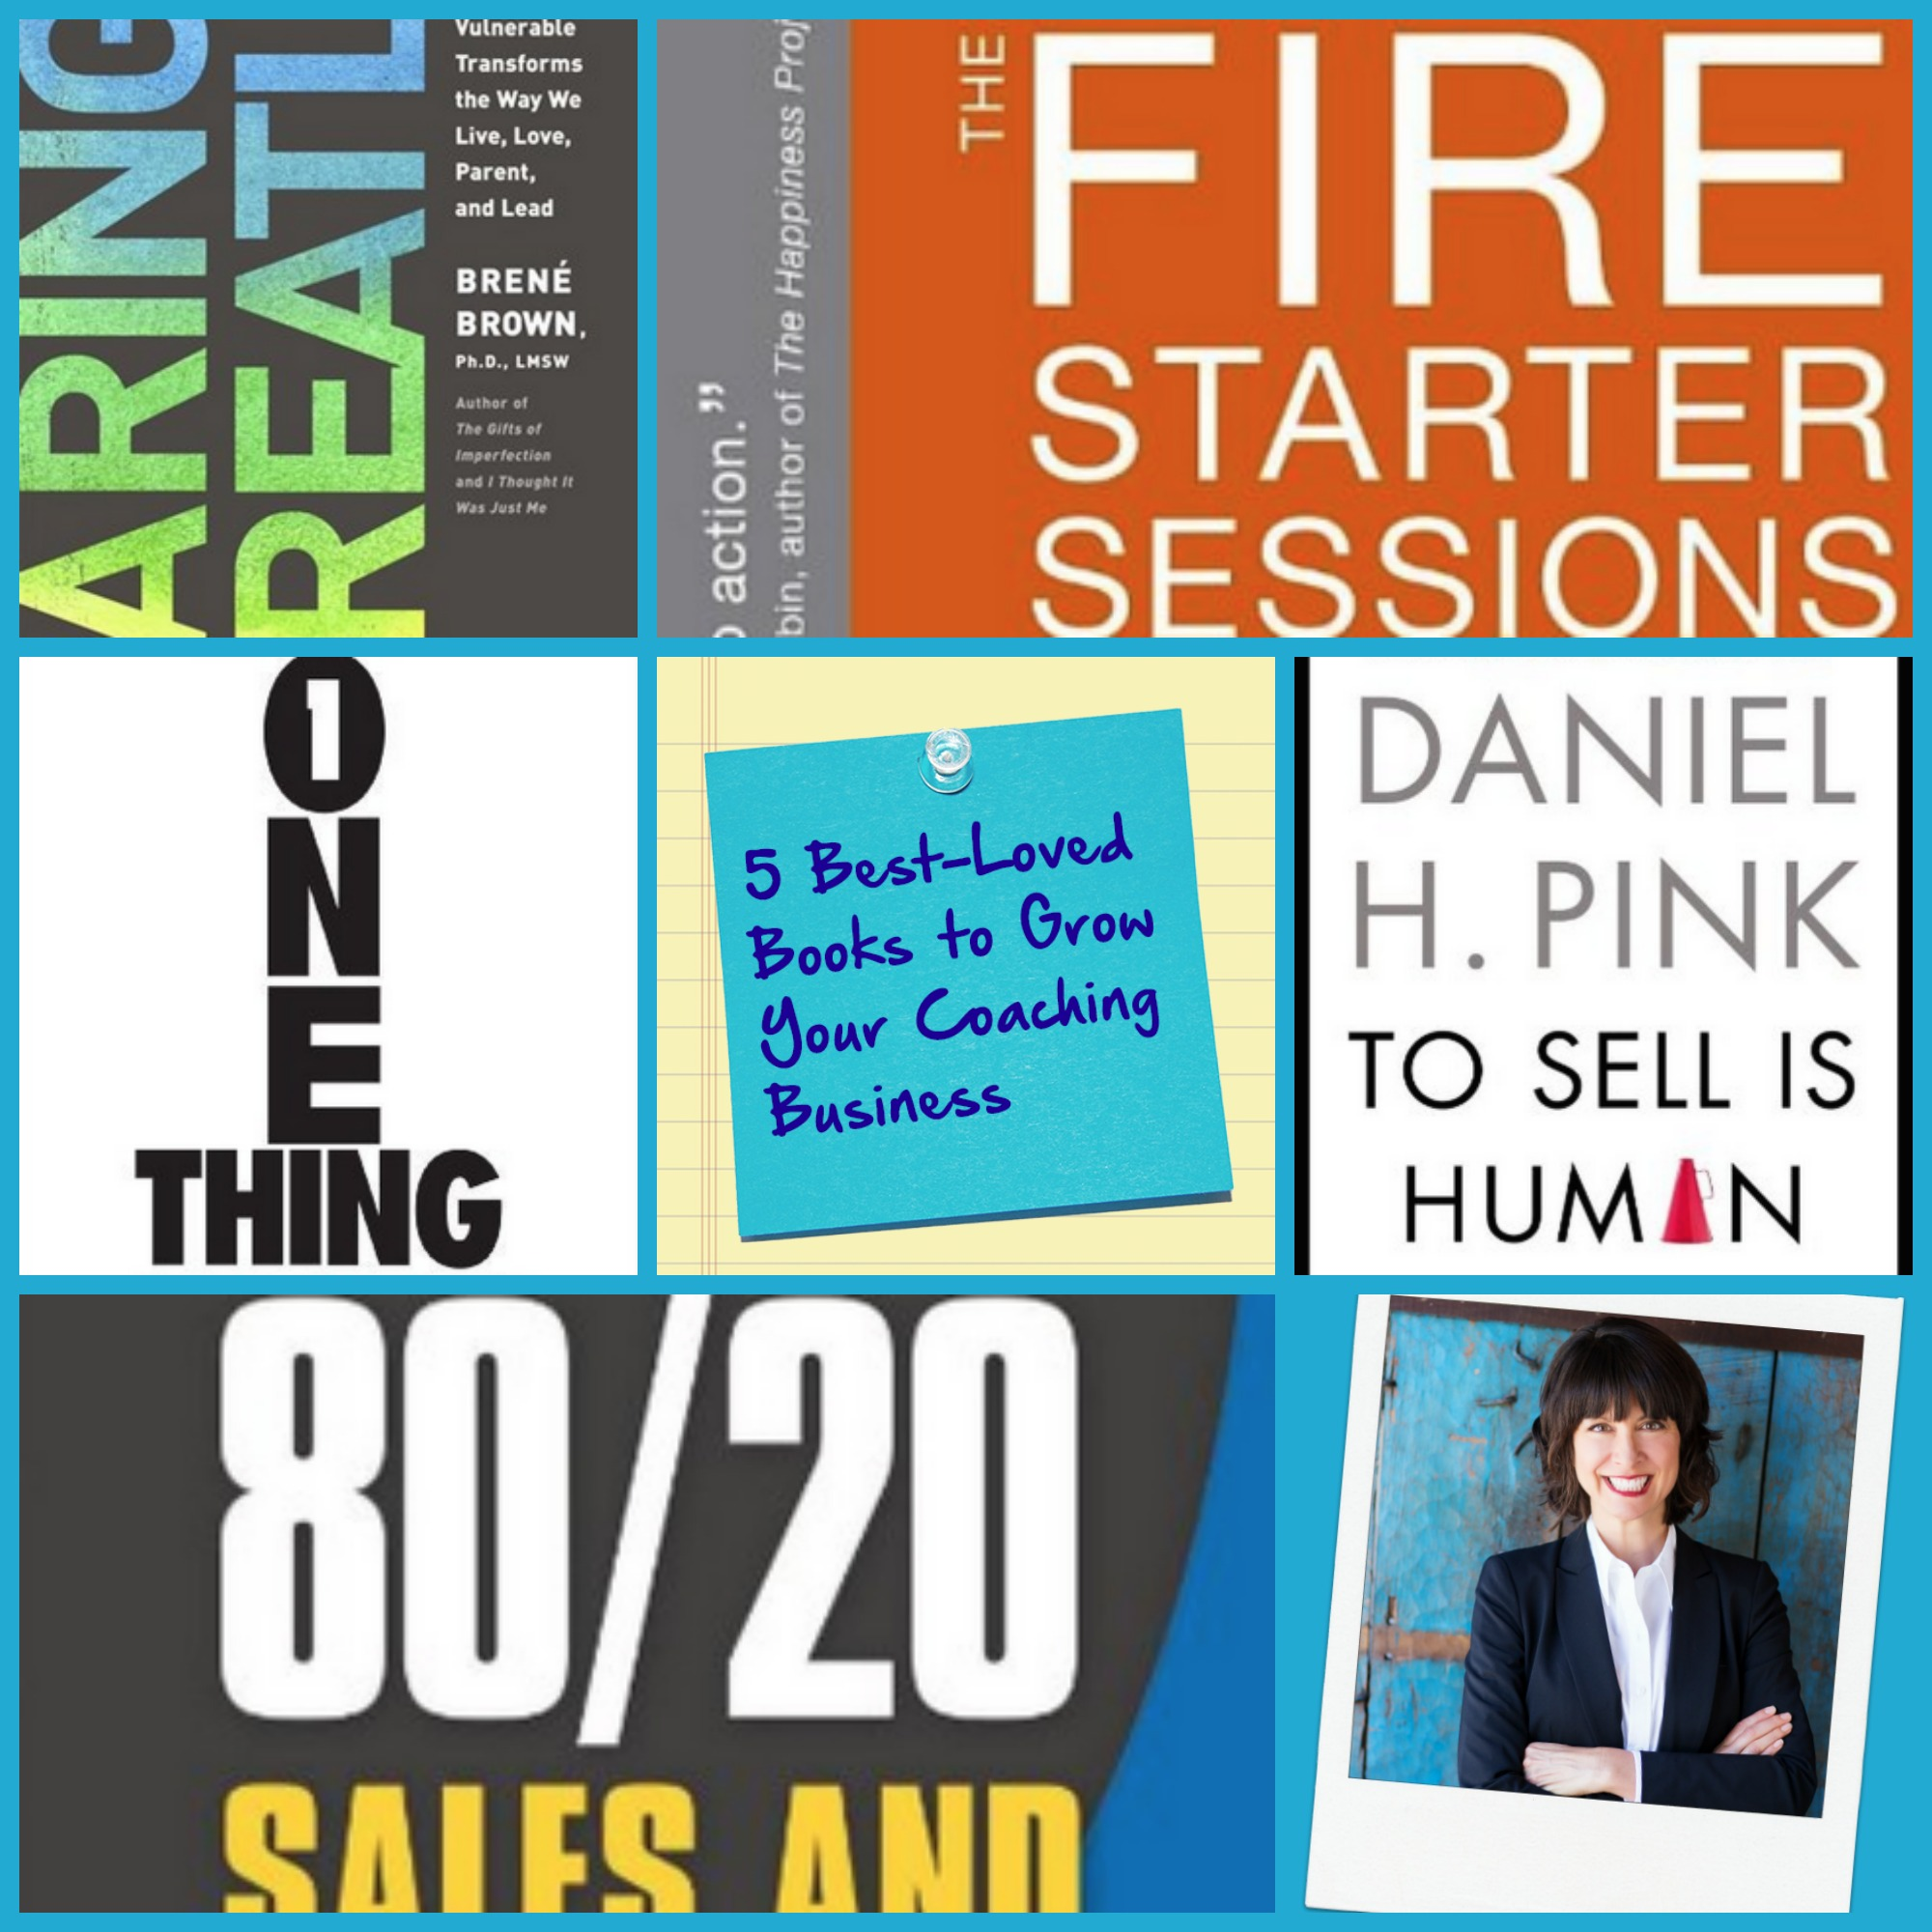 5 Best-Loved Books to Grow Your Coaching Business